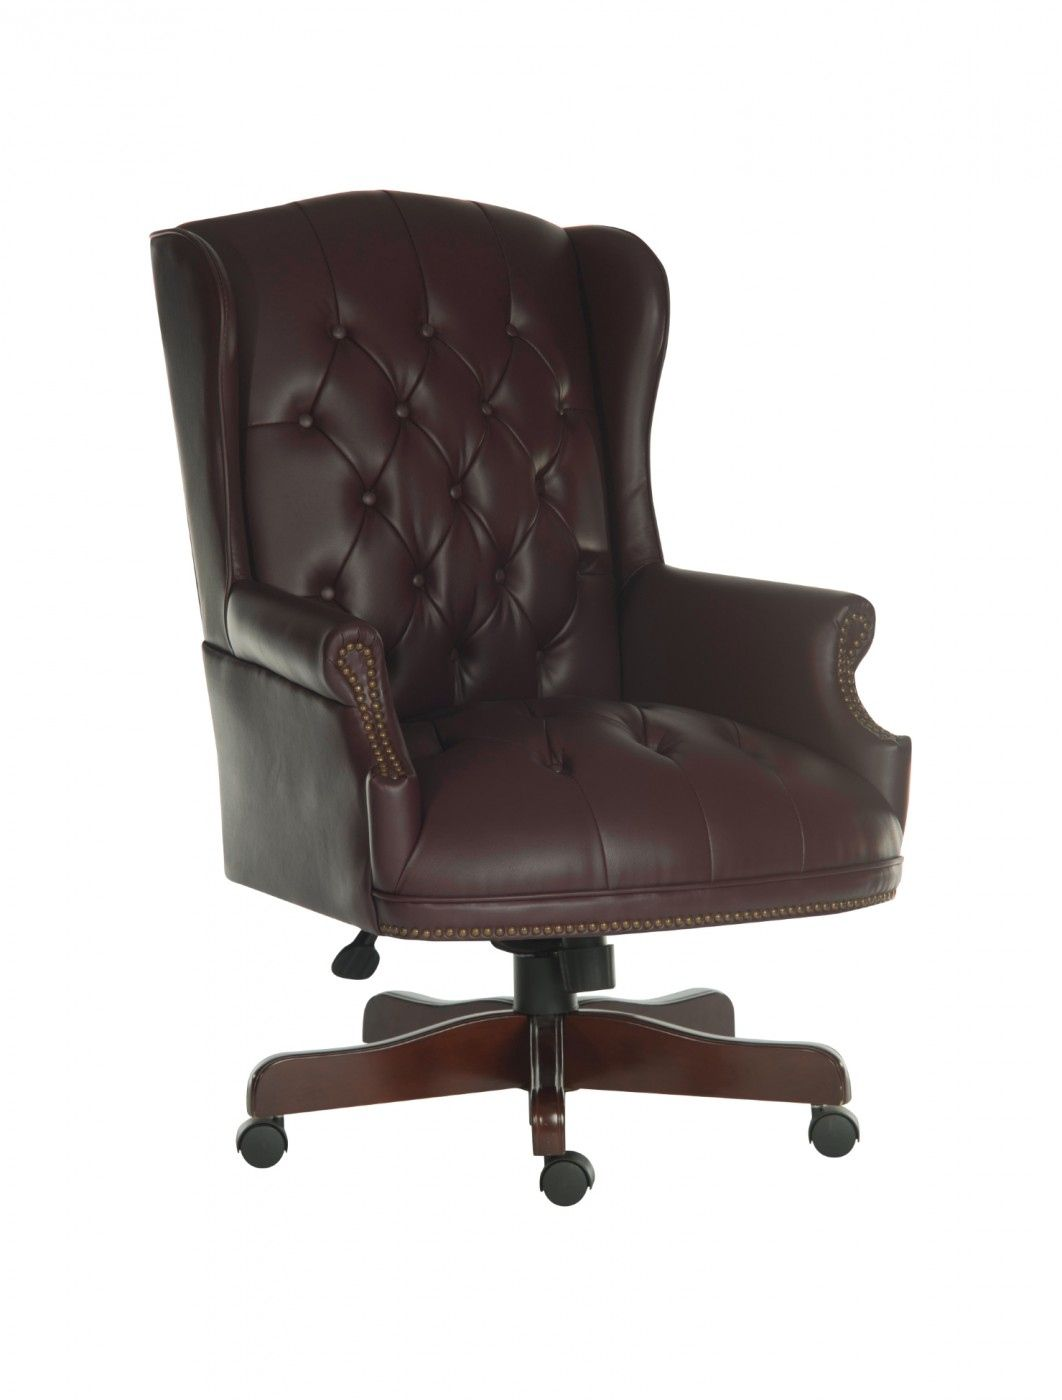 tufted leather executive office chair black 77 high back traditional tufted leather executive office chair home furniture images check